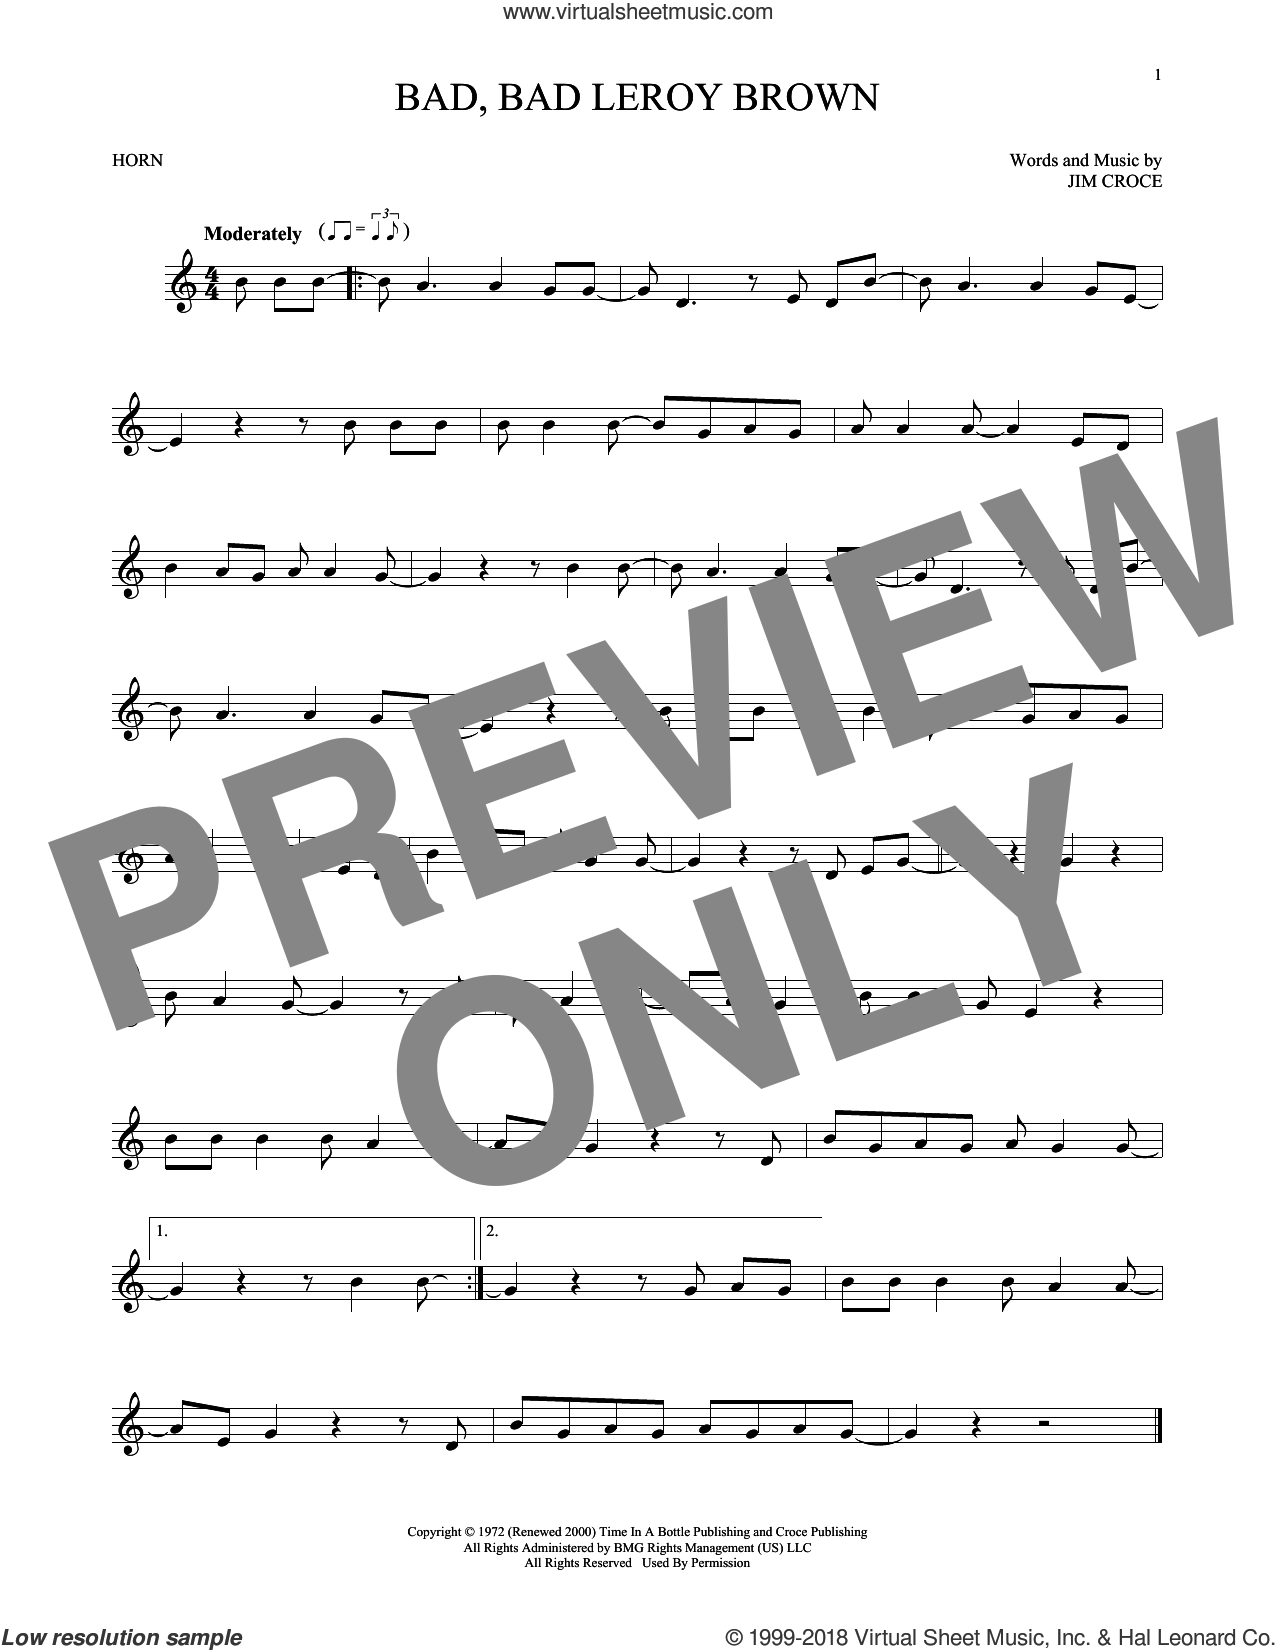 Bad, Bad Leroy Brown sheet music for horn solo by Jim Croce, intermediate skill level